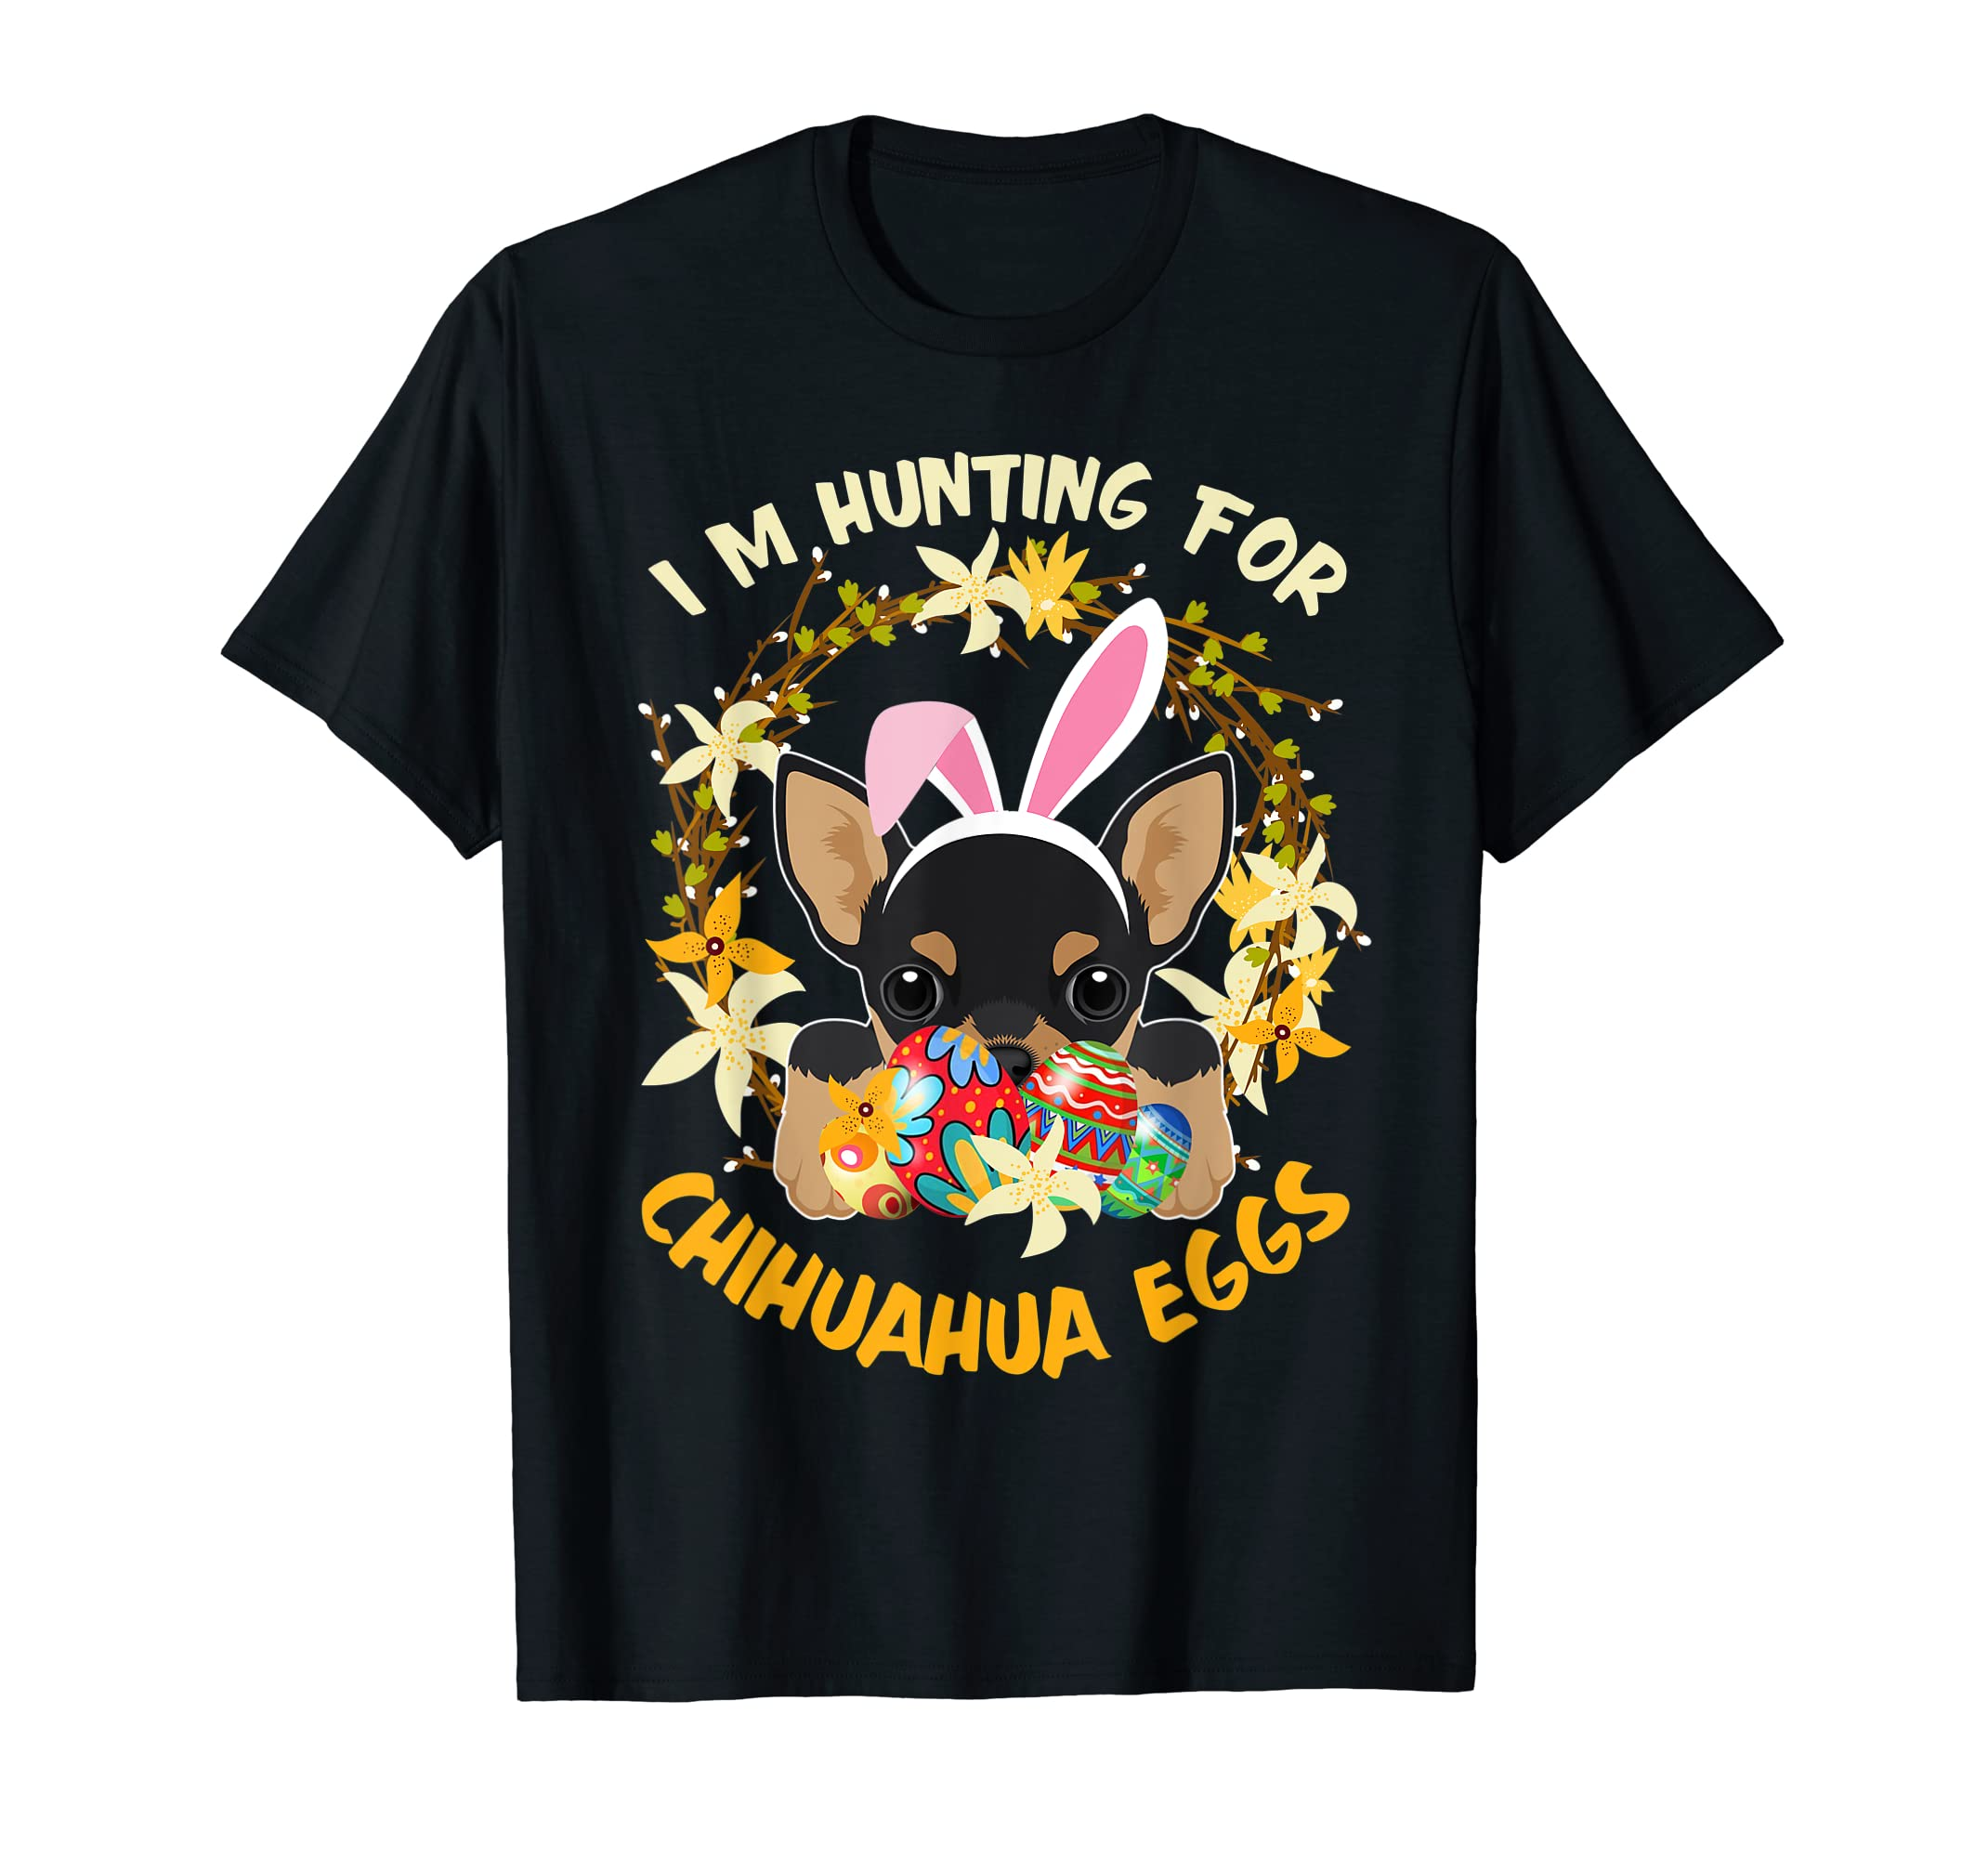 Hunting for Chihuahua Eggs Happy Easter Kids Boys Girls Tees-Men's T-Shirt-Black